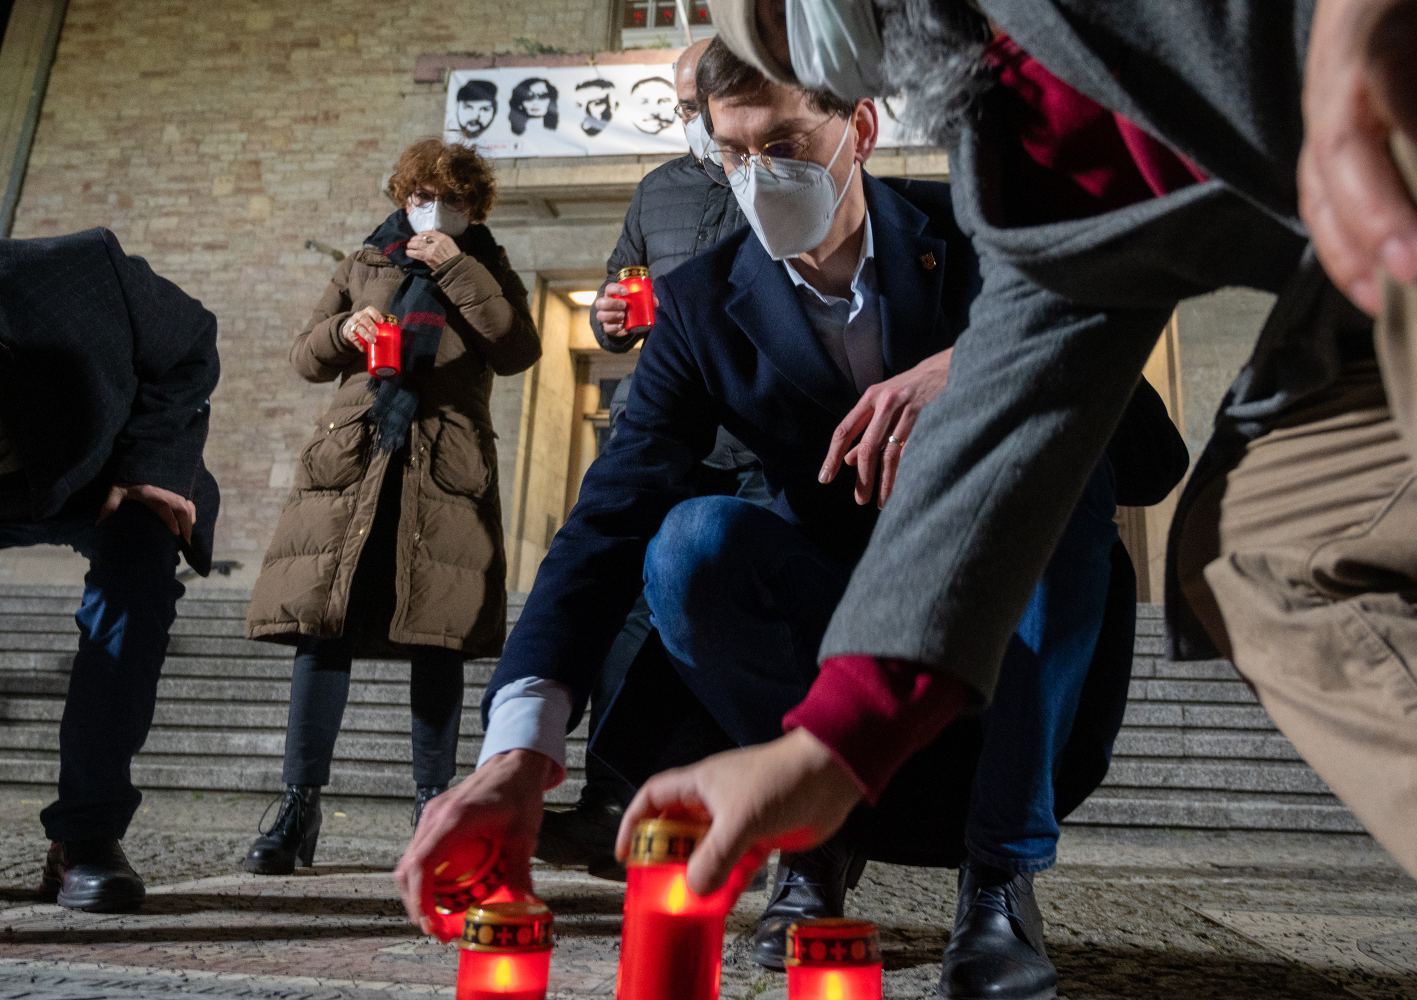 Germany marks a year since deadly racist shooting in Hanau